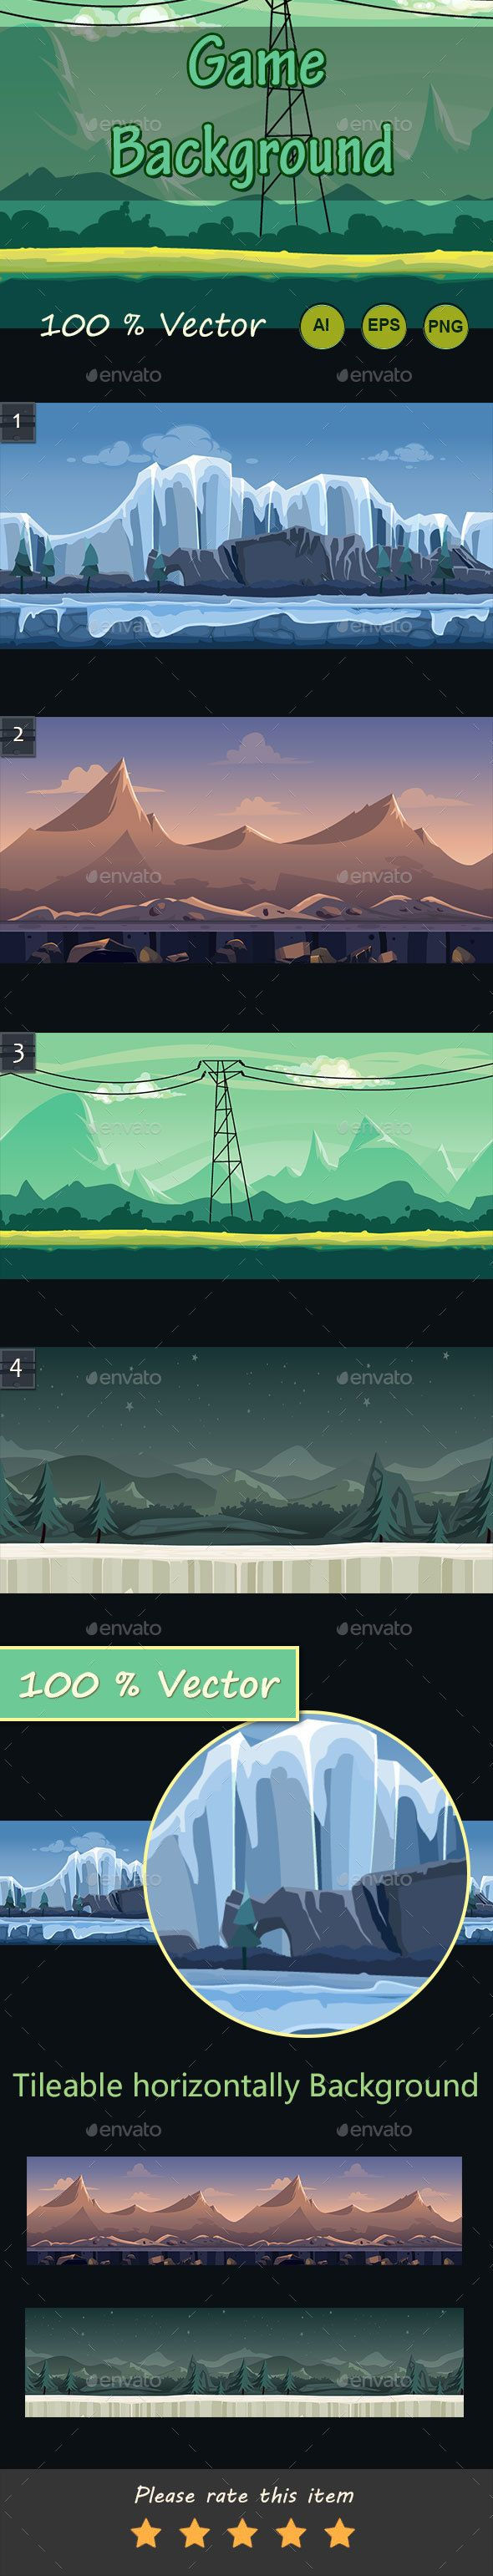 5 Game Backgrounds Download here: https://graphicriver.net/item/5-game-backgrounds/16900472?ref=KlitVogli